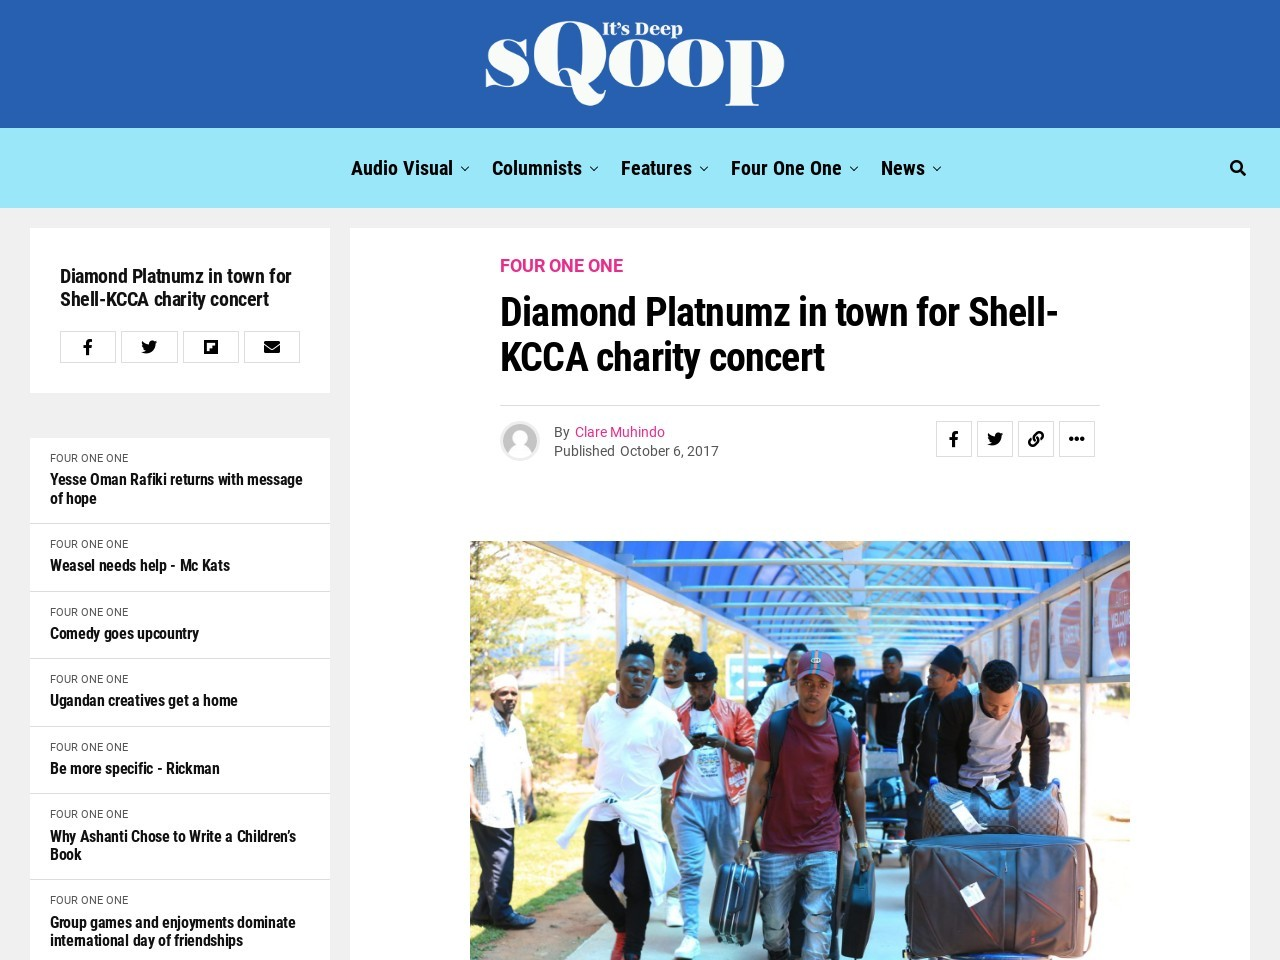 Diamond Platnumz in town for Shell-KCCA charity concert